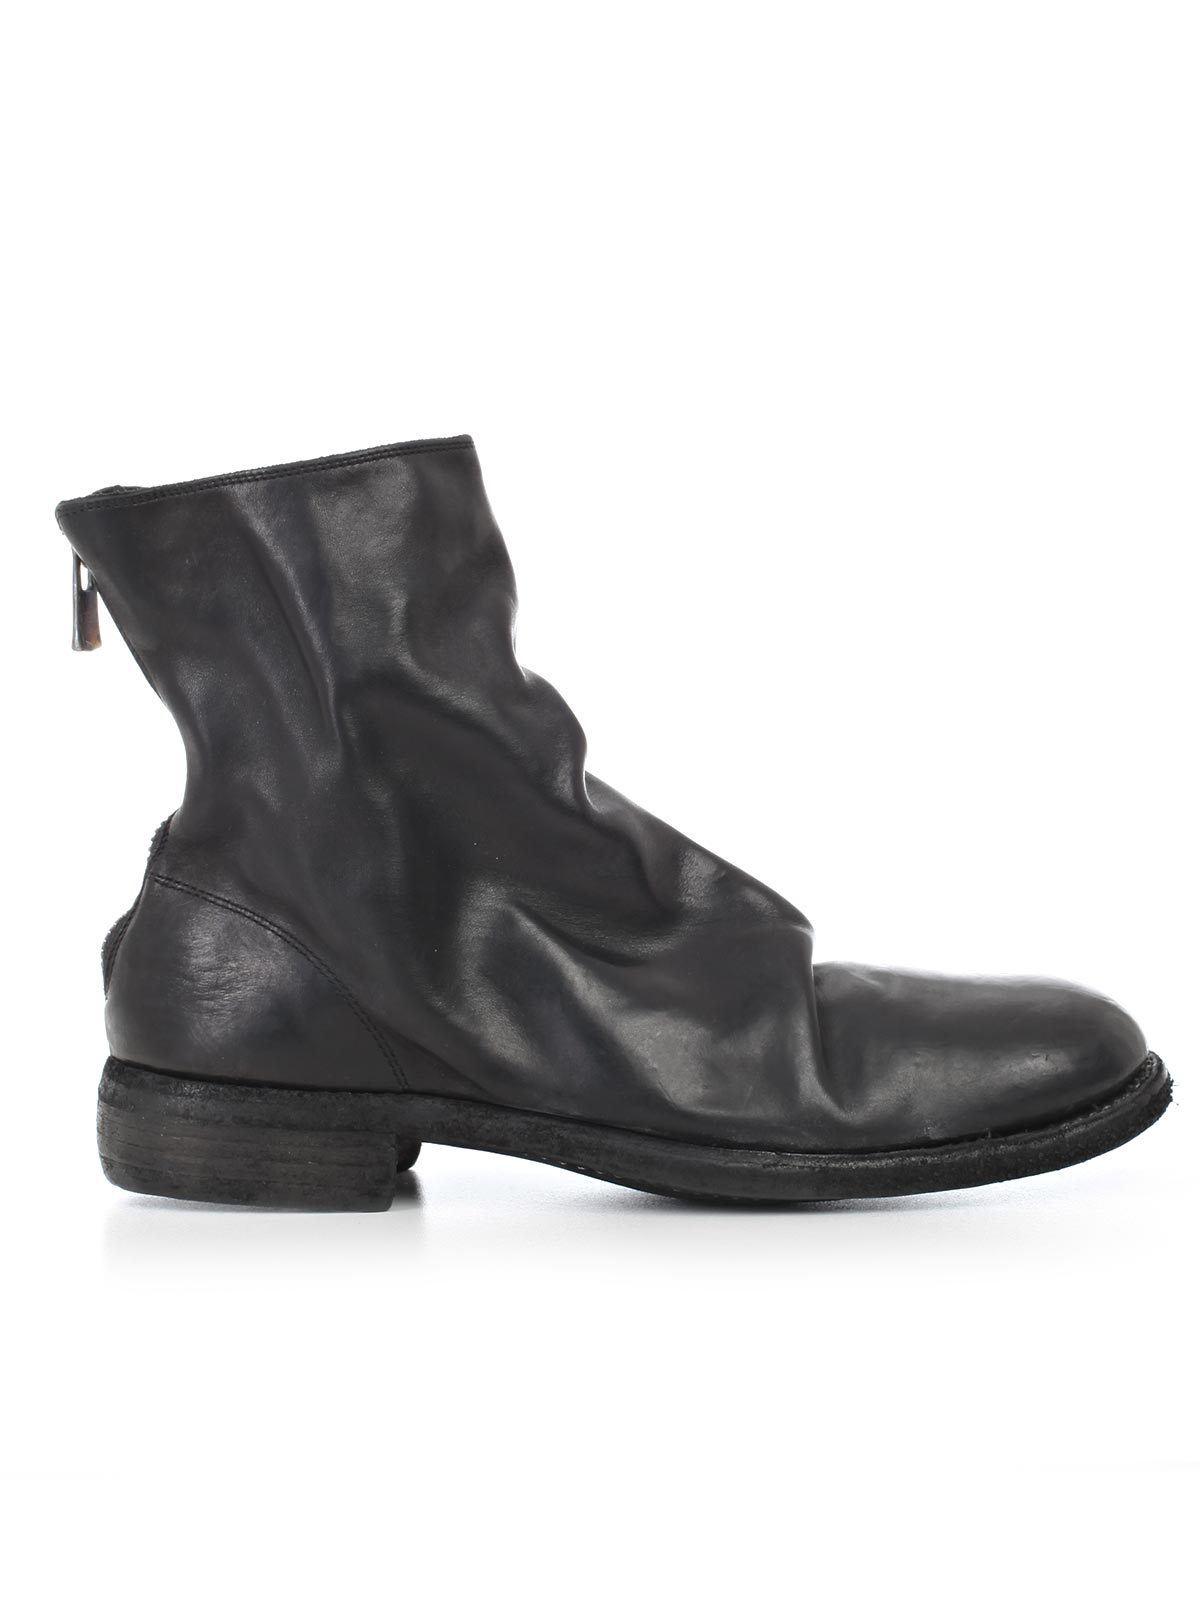 Picture of GUIDI FOOTWEAR